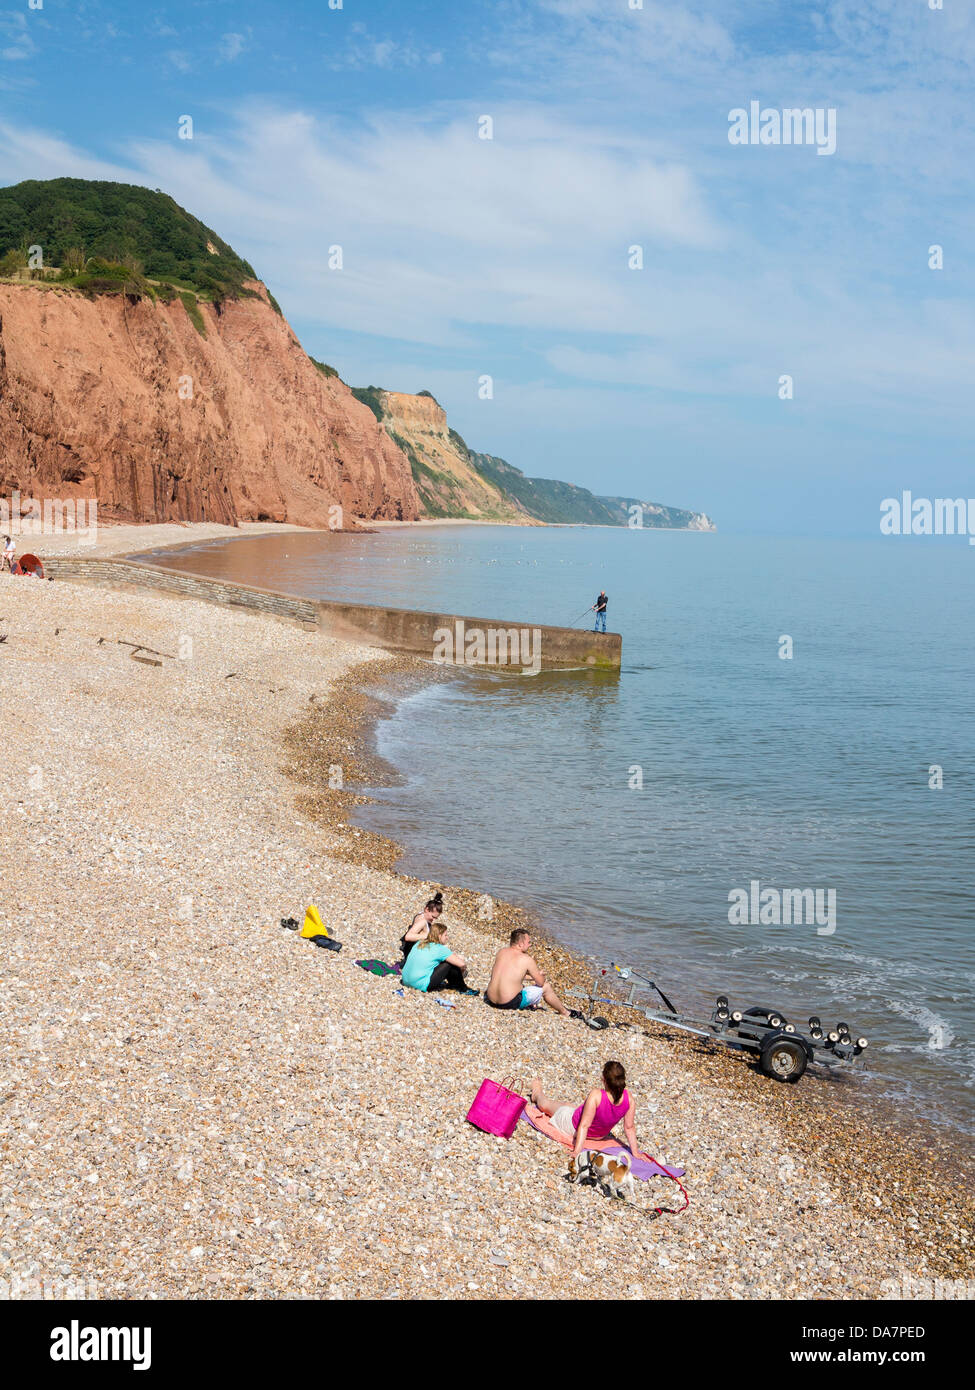 Sunbathers and fisherman at Sidmouth, Devon, England - Stock Image